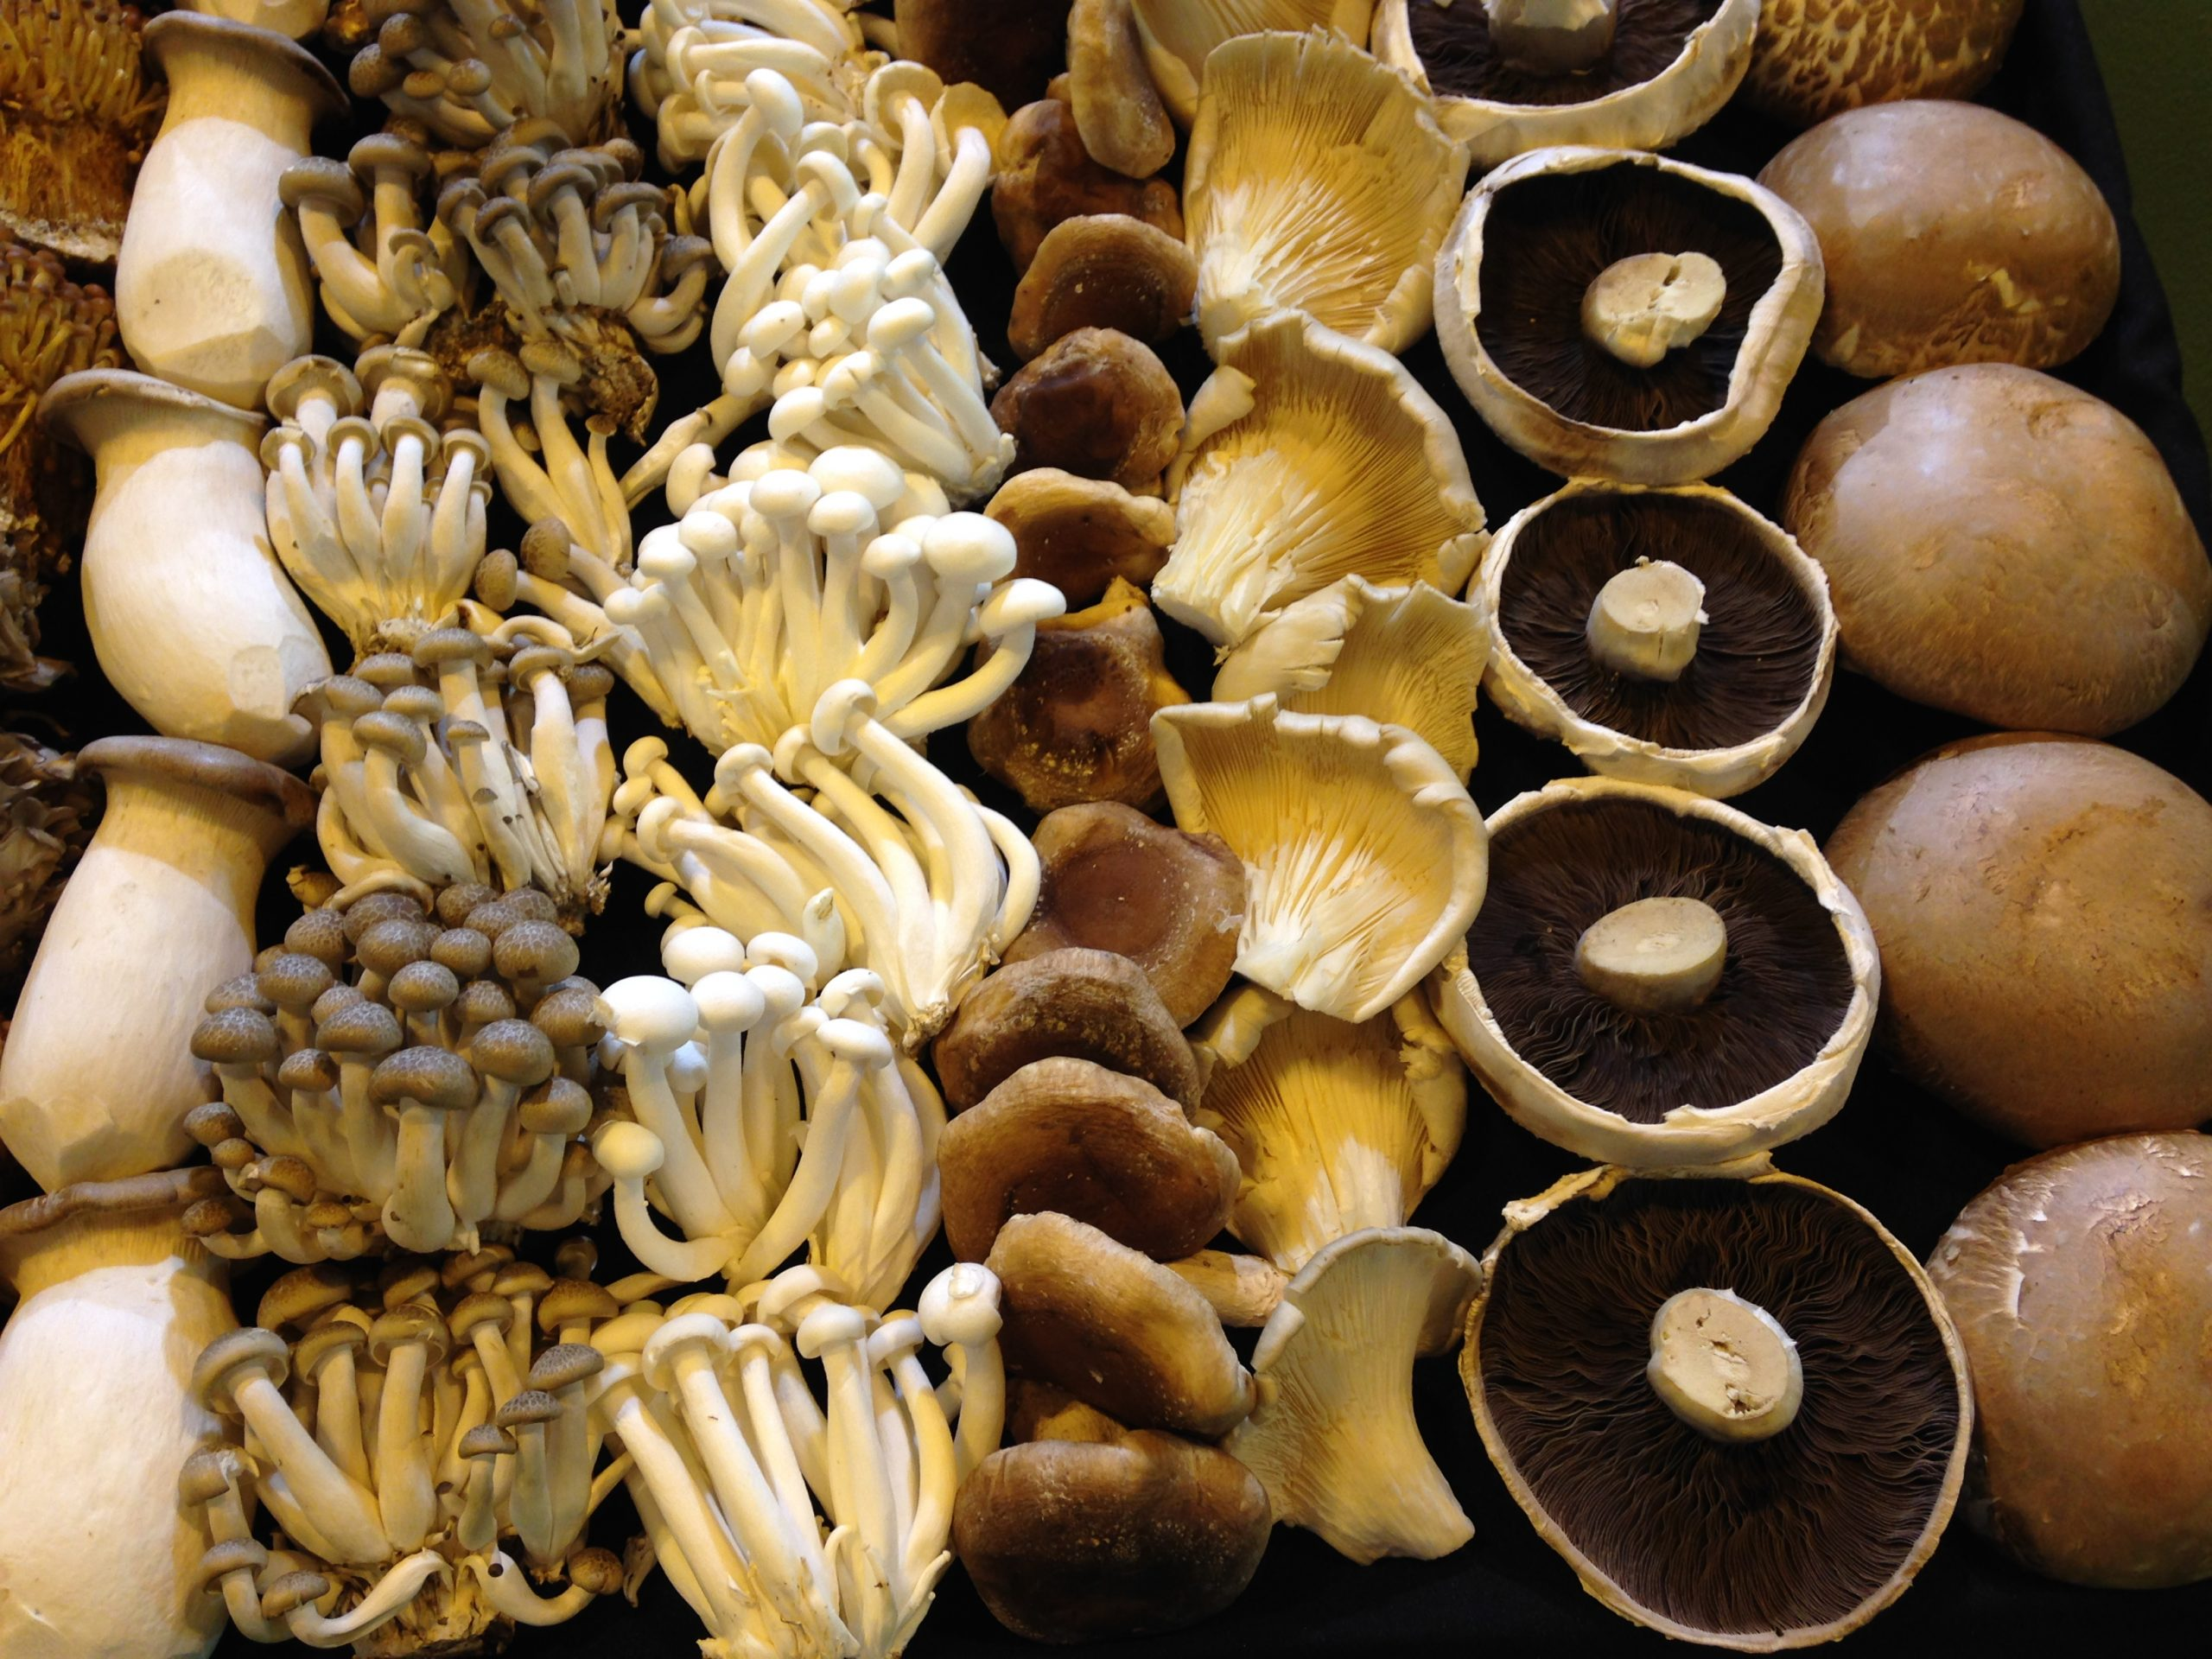 The EWG recommends that the Committee consider establishing an ML for lead in fungi and mushrooms (excluding dried fungi and mushroom and fungus products) of 0.3 mg/kg.